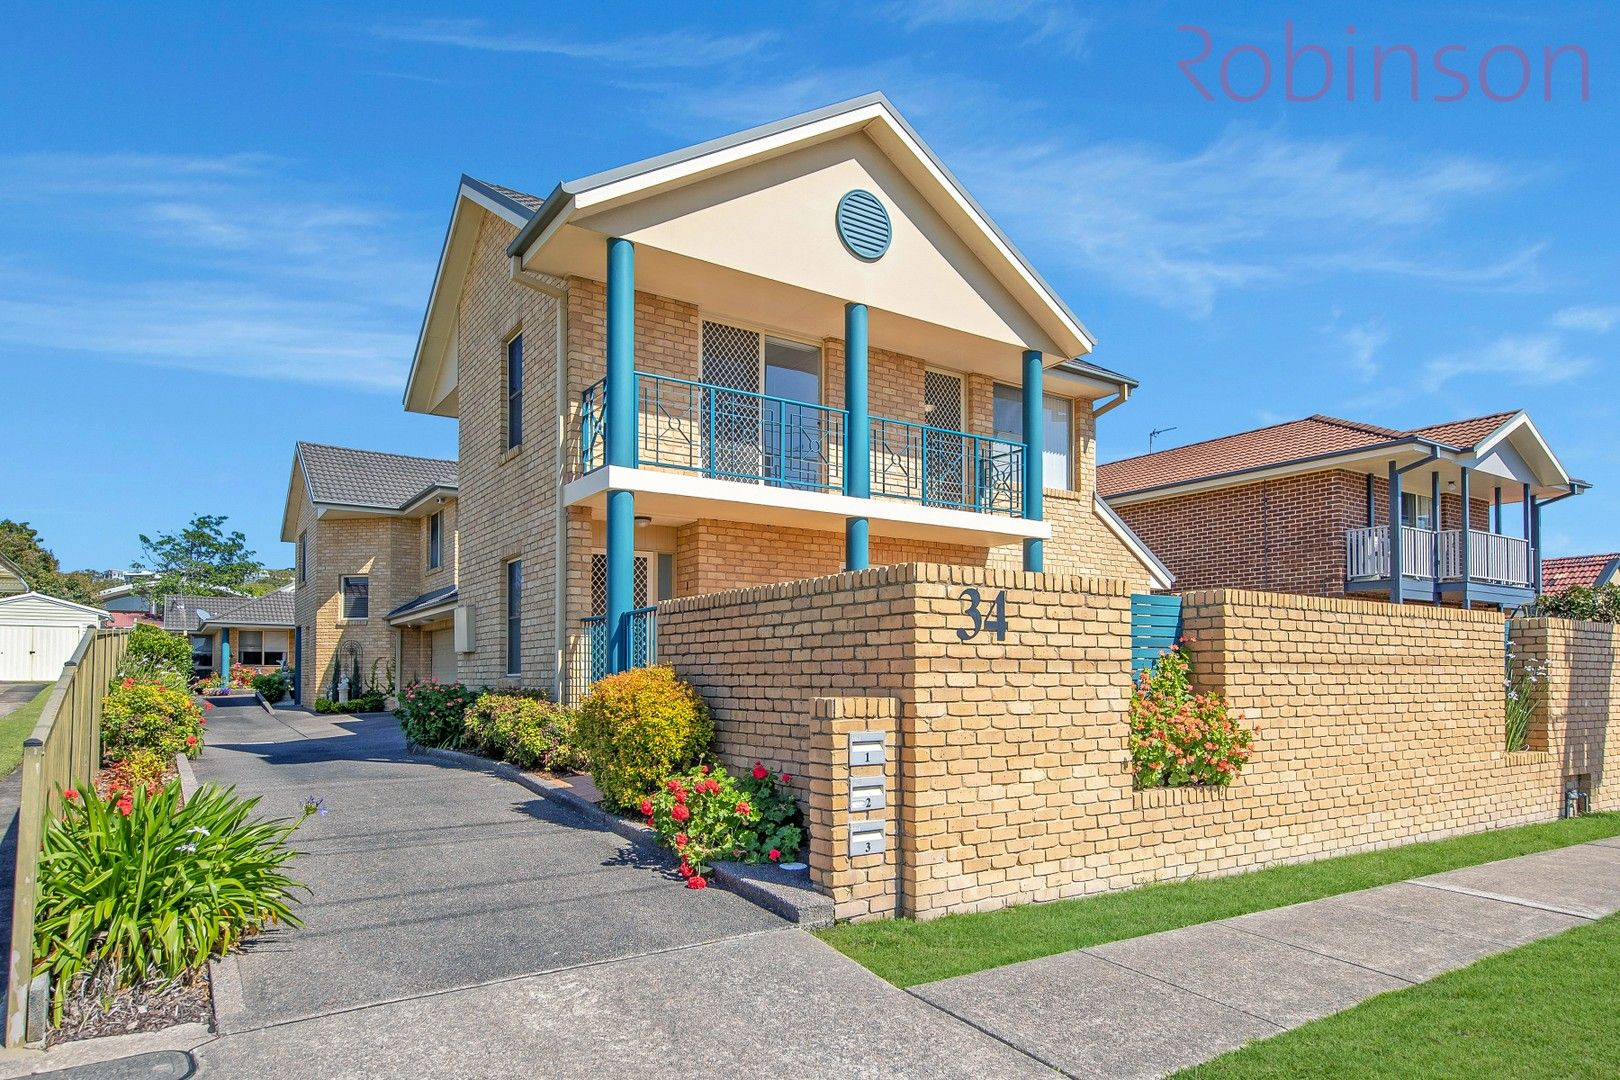 1/34 Caldwell Street, Merewether NSW 2291, Image 0